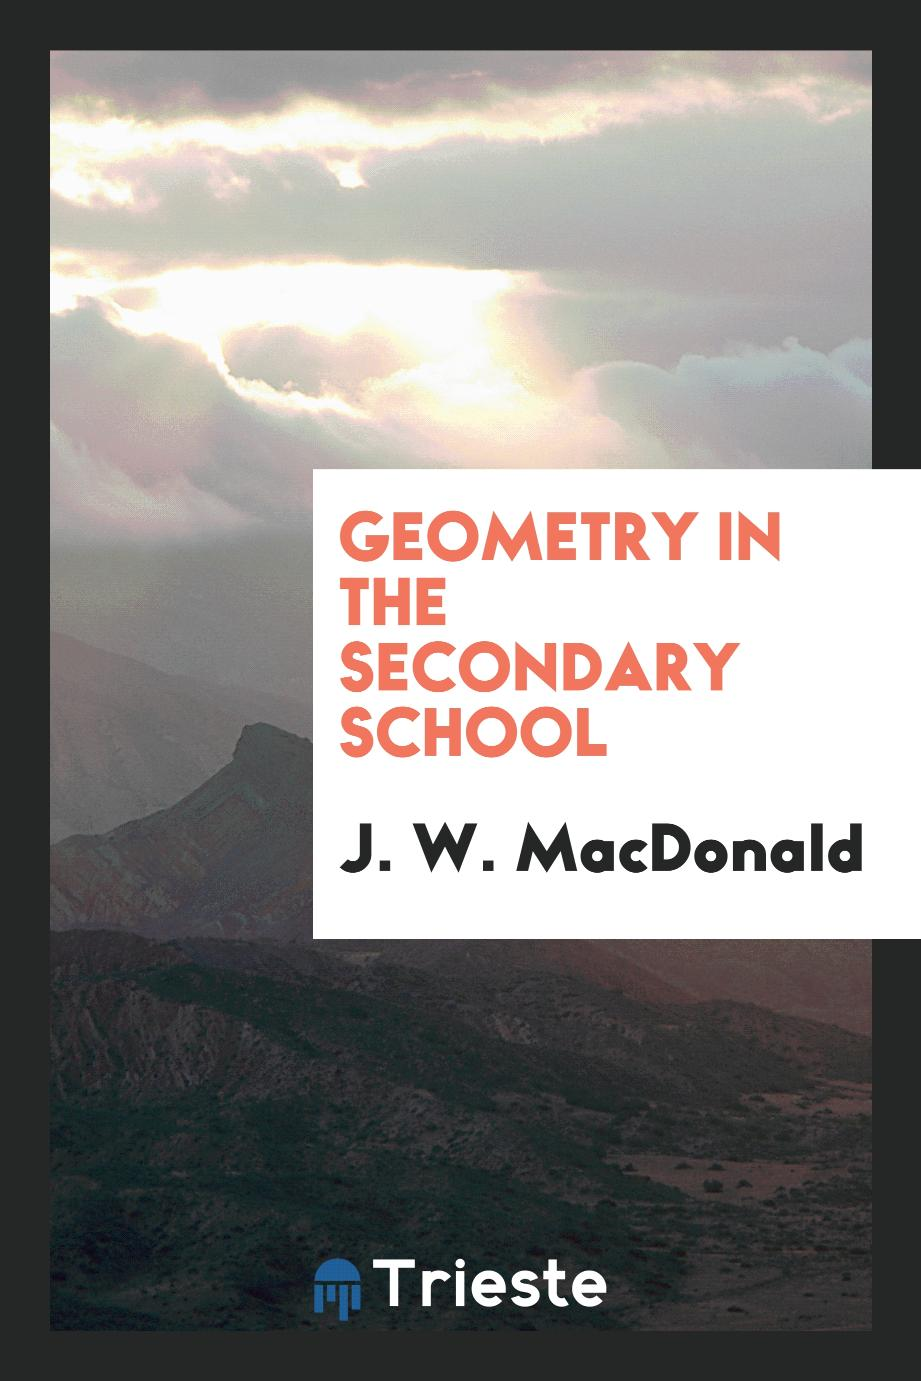 Geometry in the Secondary School